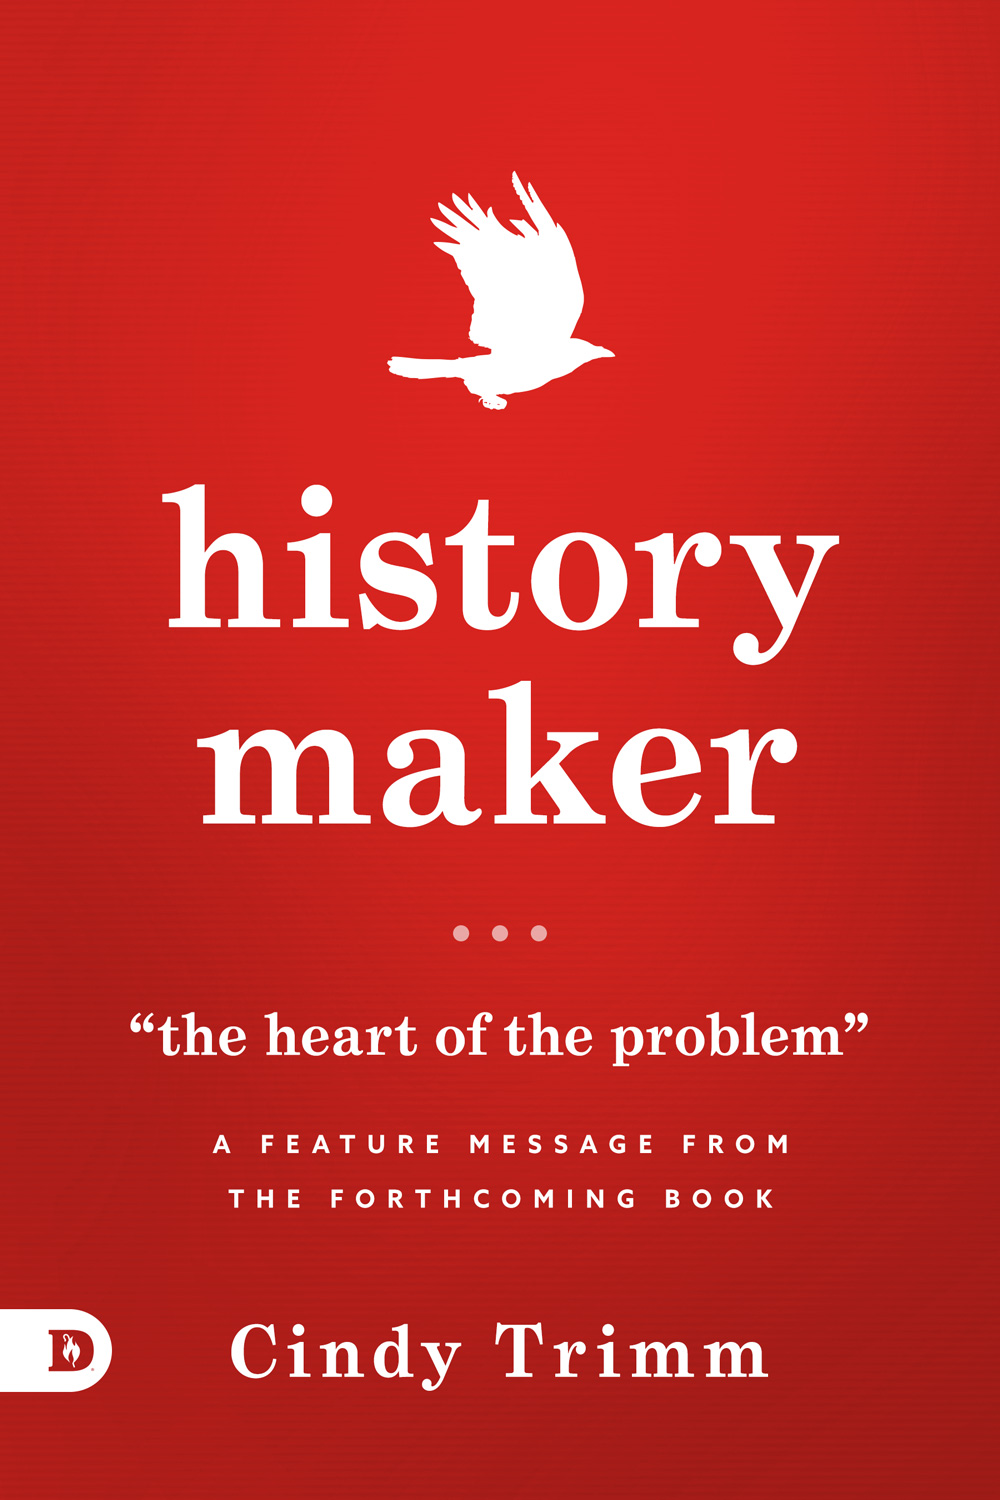 History_Maker_FeatureMessage_FrontCover.jpg